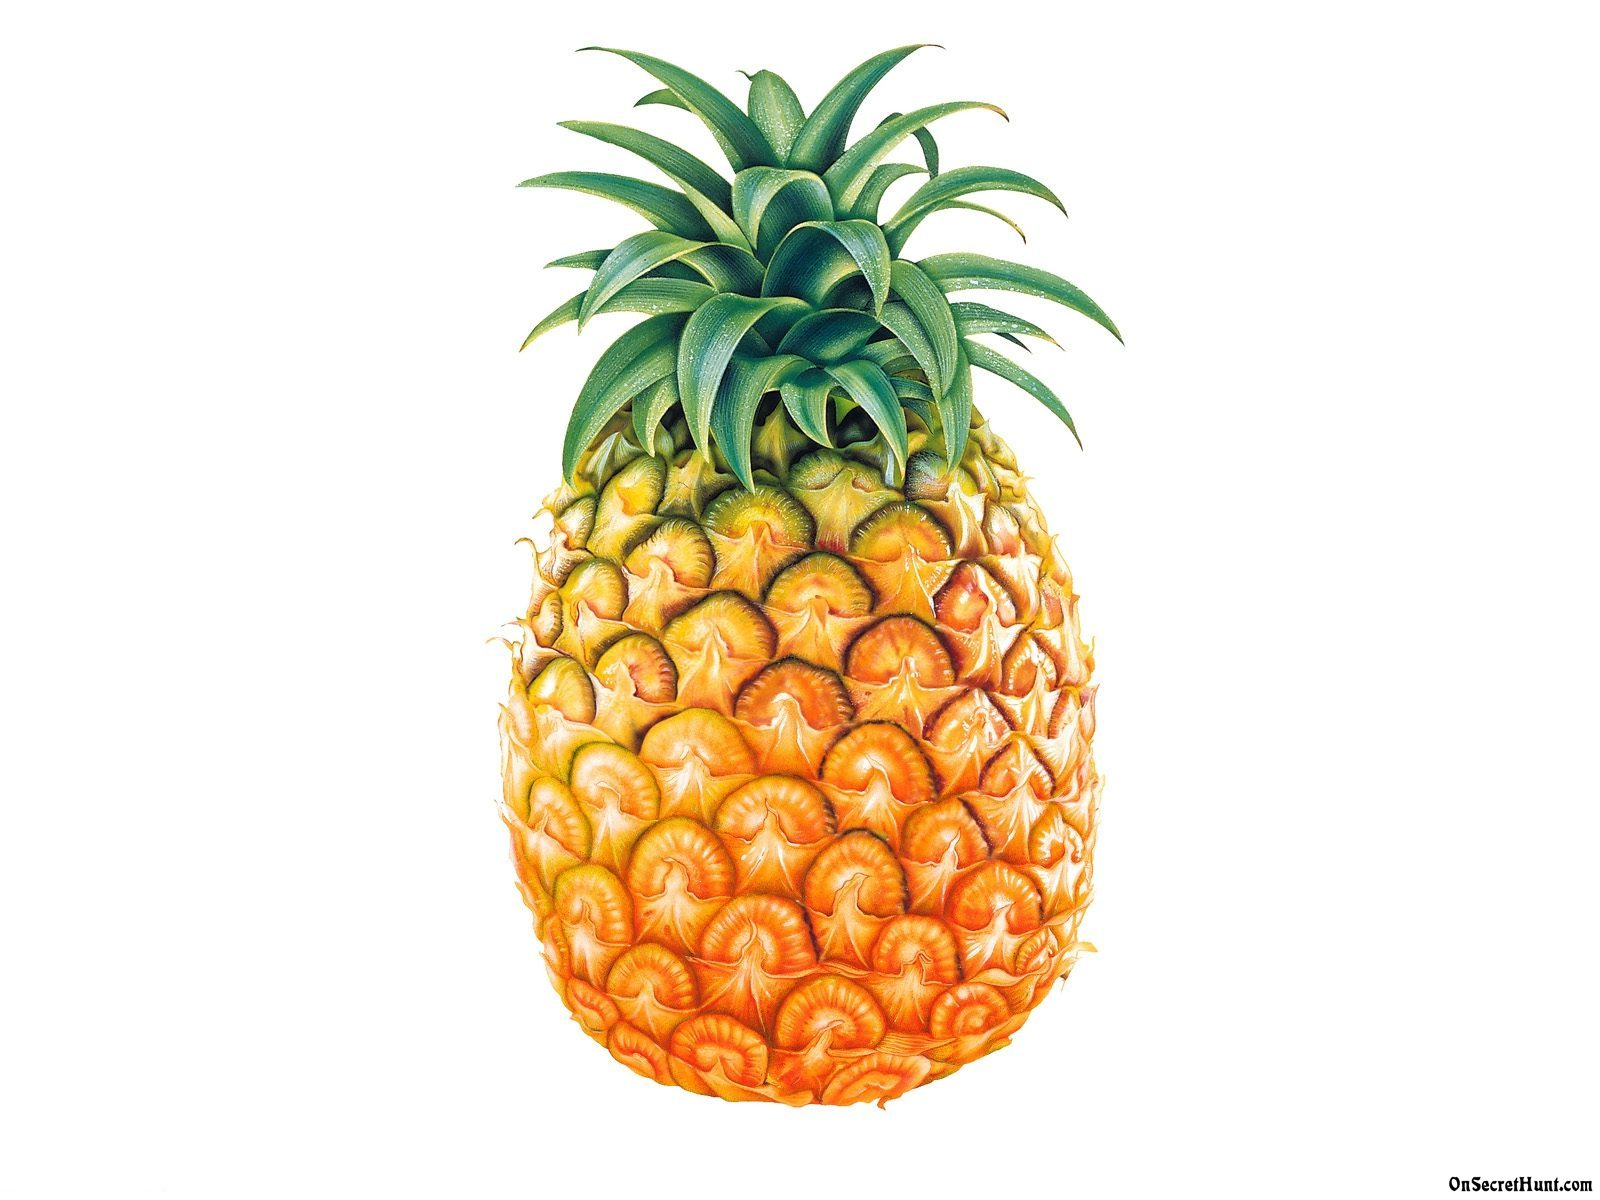 Download 1600x1200 px Pineapple HD Wallpapers for Free | BsnSCB